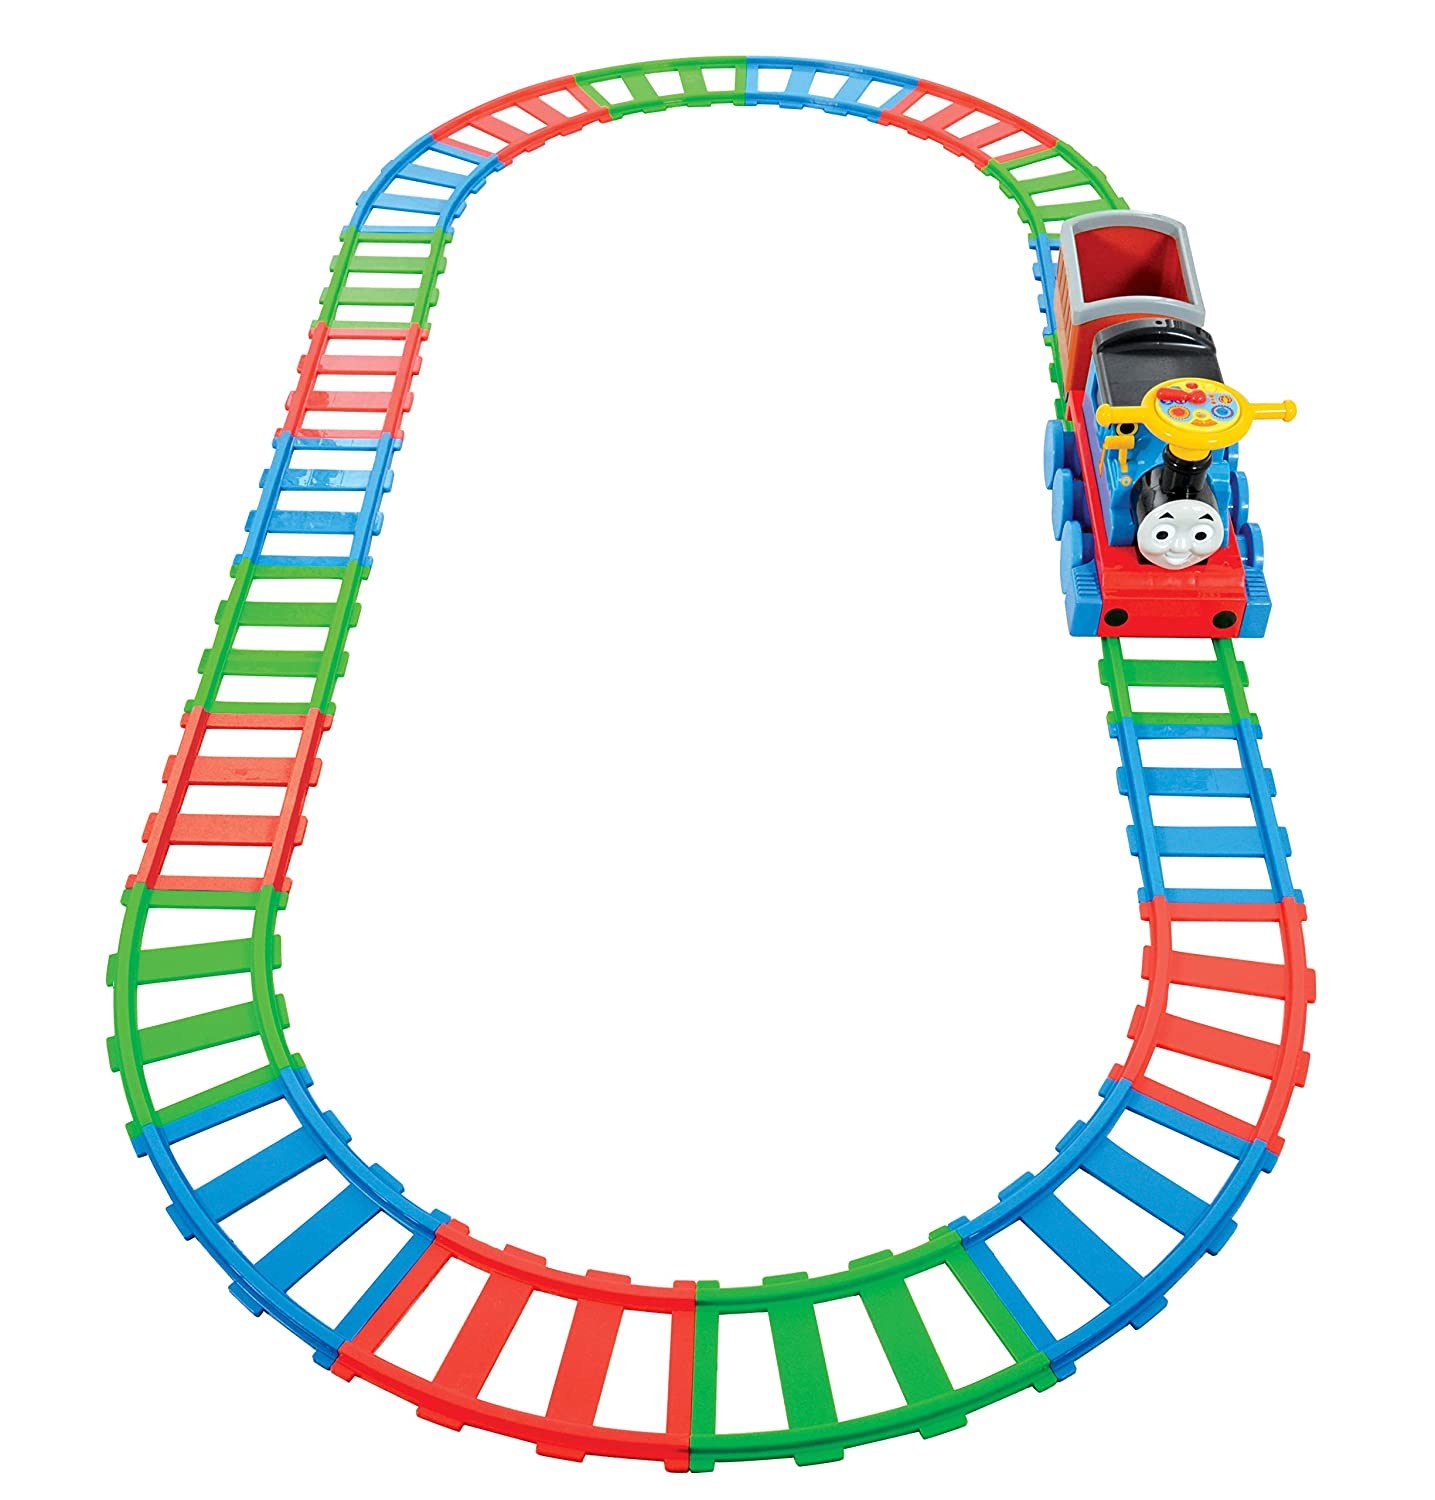 Thomas & Friends Battery Operated Train and 22 piece Track Set MV Sports M09219 Sounds Music Ride On Trains Thomas the Tank Engine & Friends Vehicles